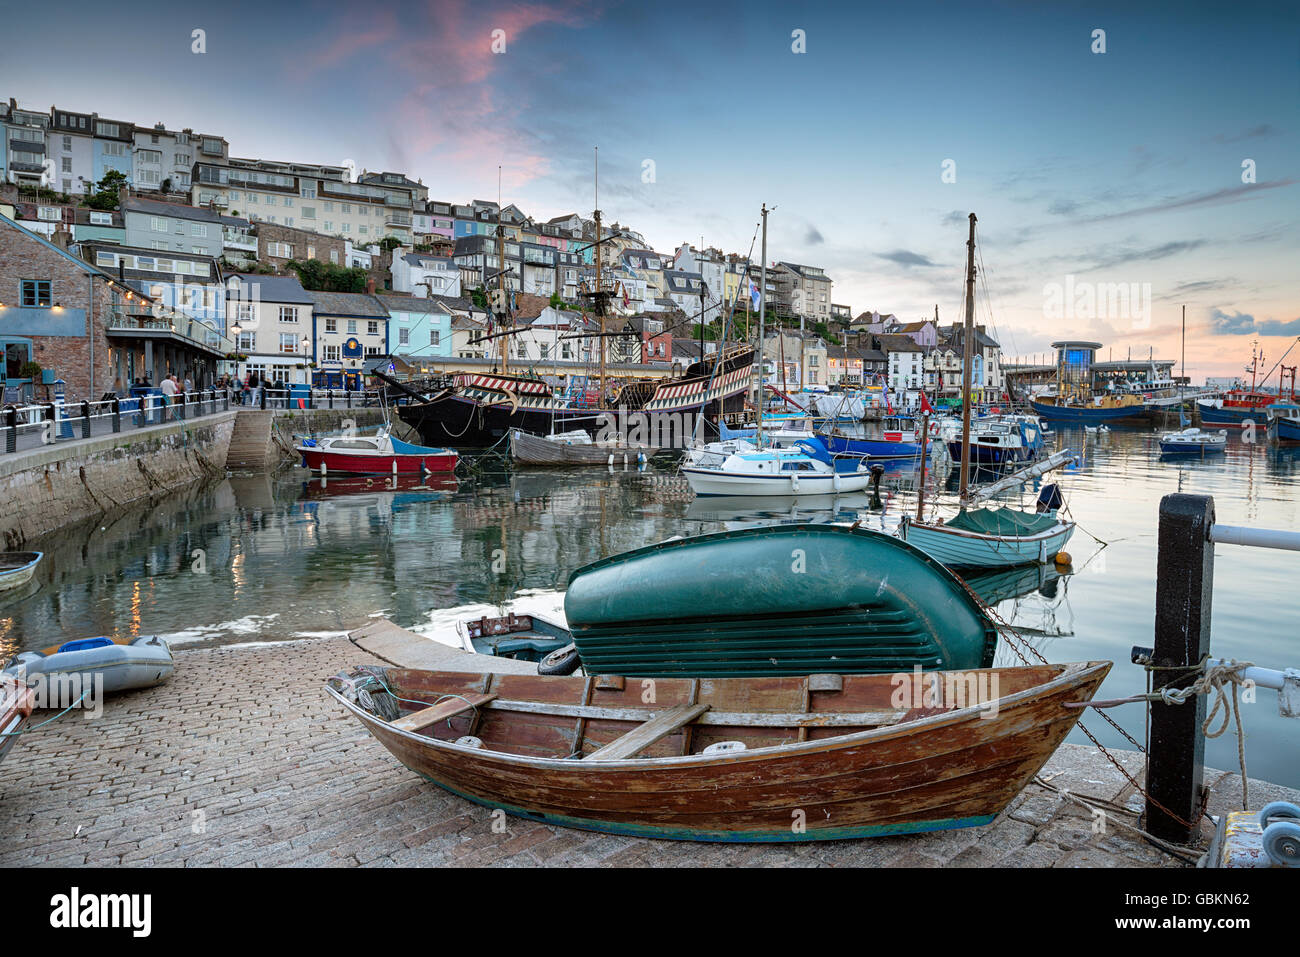 Dusk at Brixham harbour an historic fishing port in the Torbay district on the south coast of Devon - Stock Image